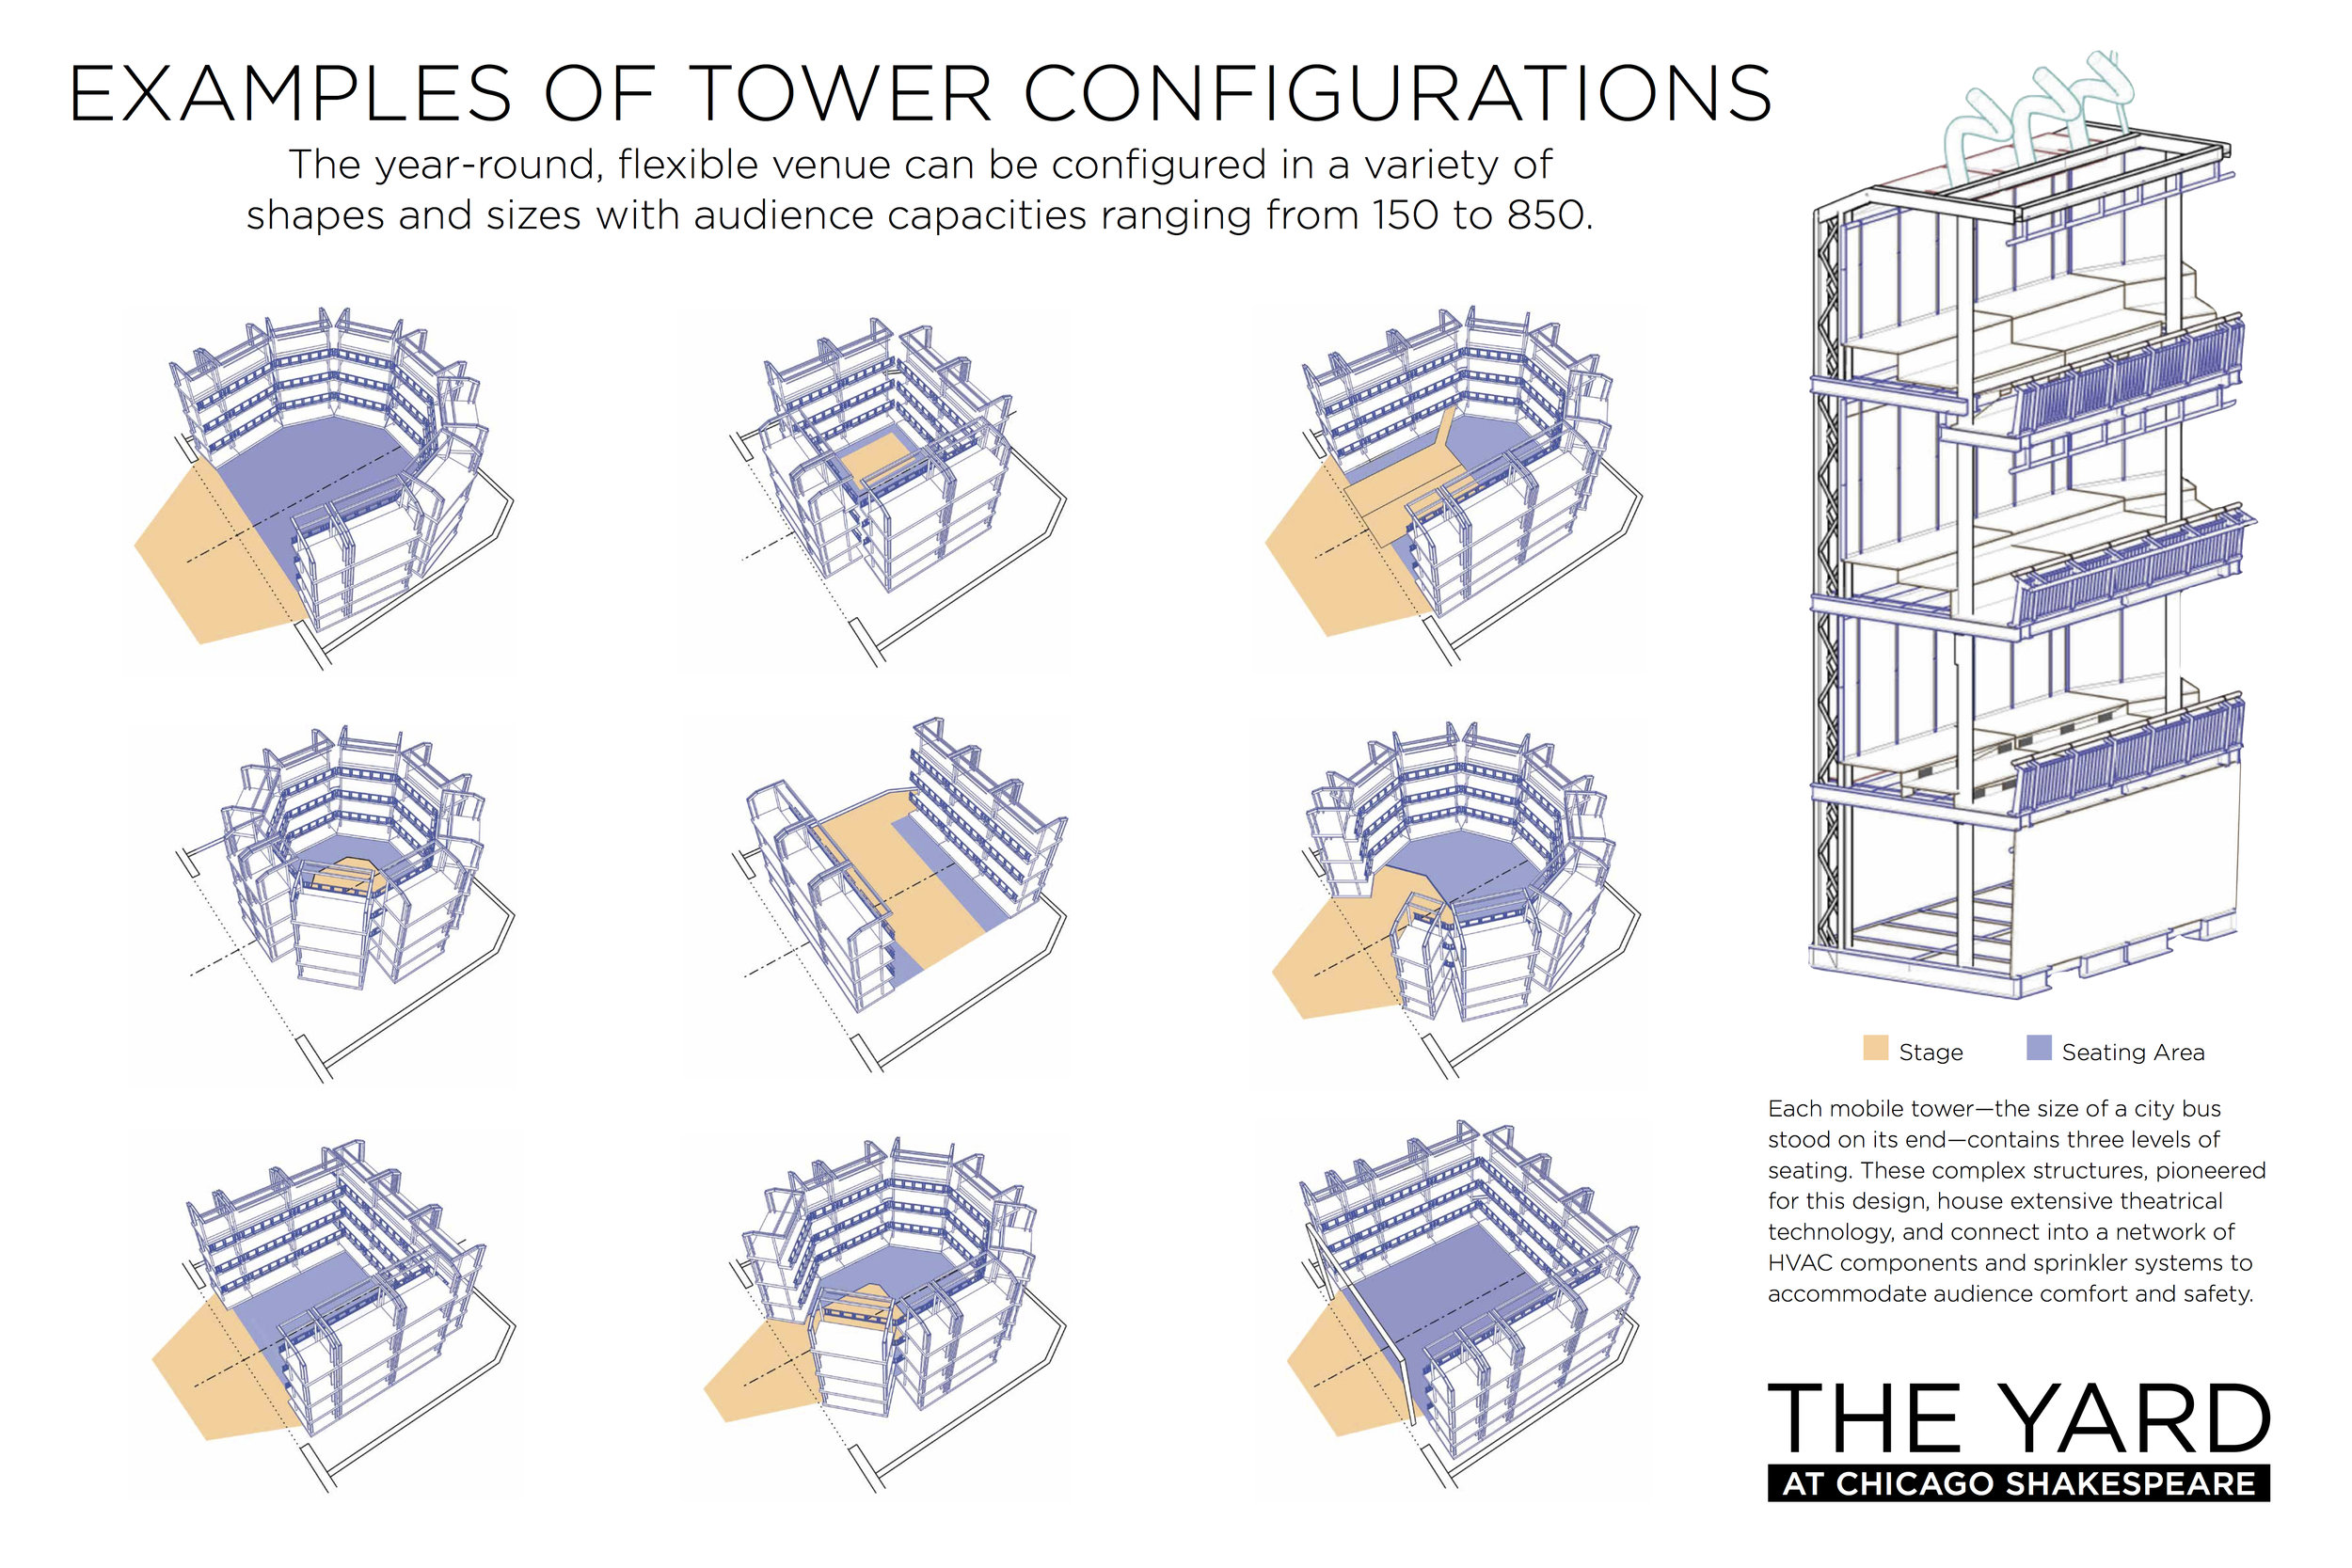 CST_The Yard_Tower Configurations copy.jpg